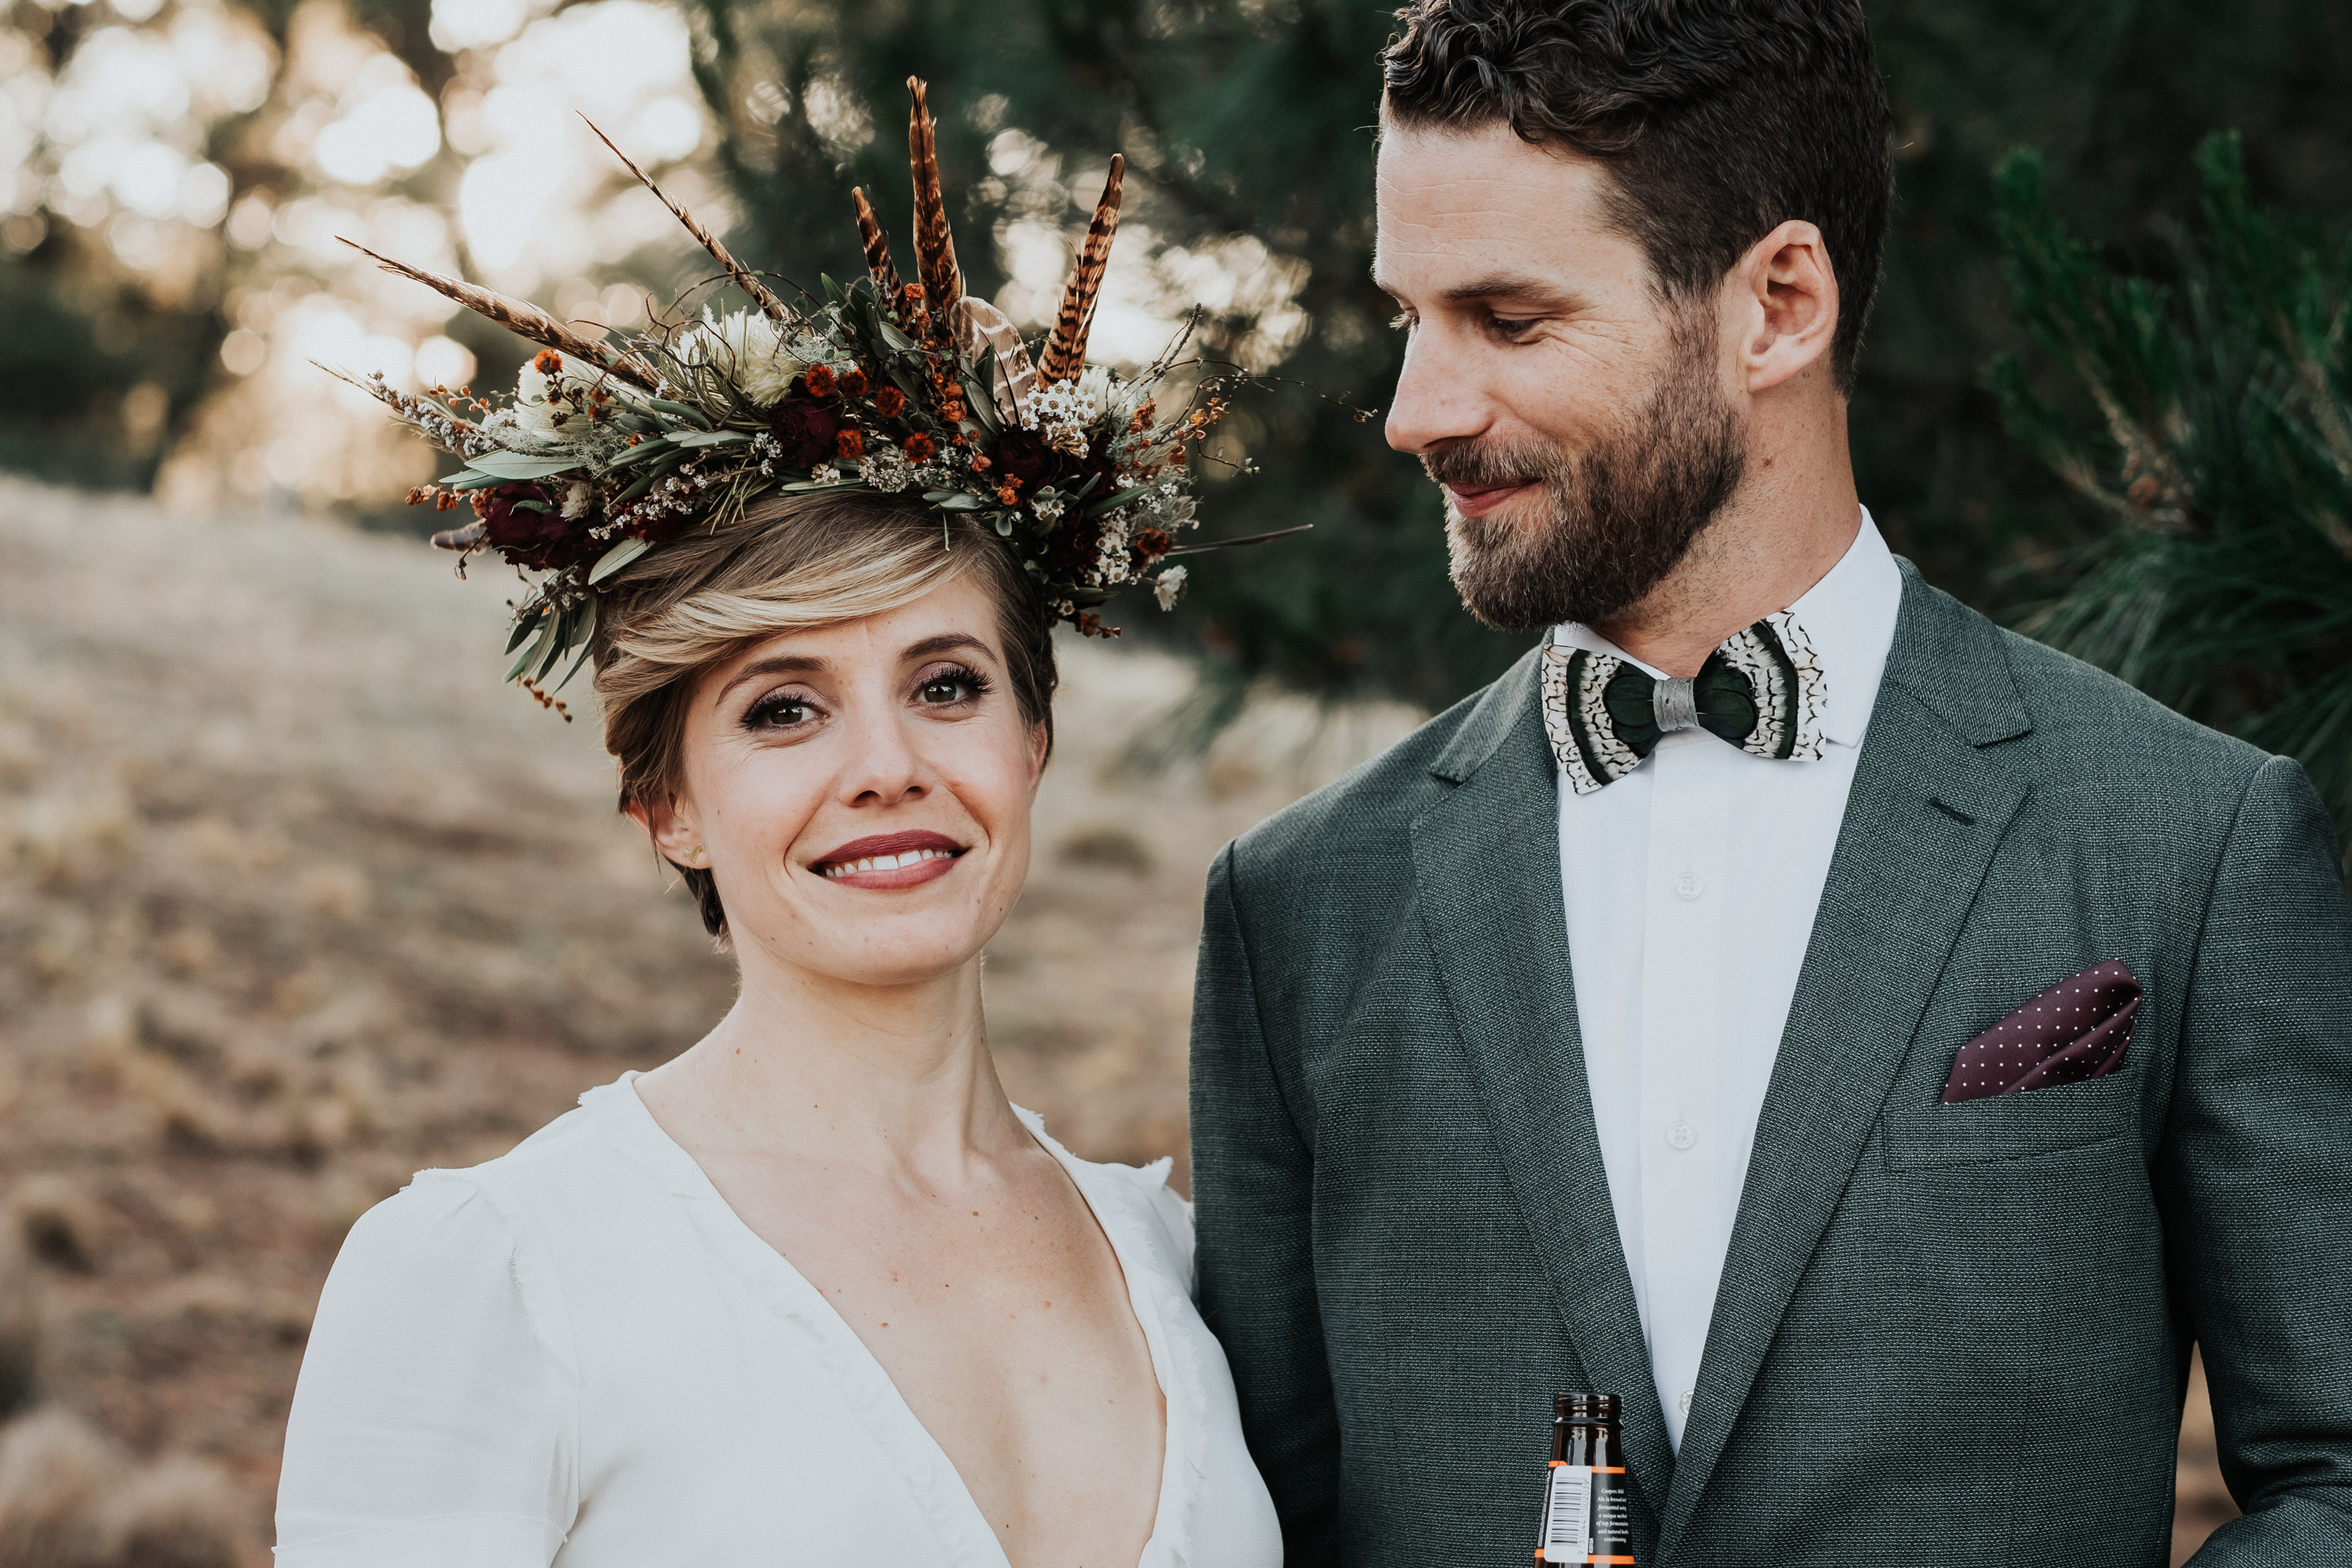 Sutton Forest Little Wren Reformation Mae You Be Boho Backyard Wedding Fox & Kin Australian Destination Photographer Nicola Bodle Bellingen Byron Bay Coffs Harbour Photography